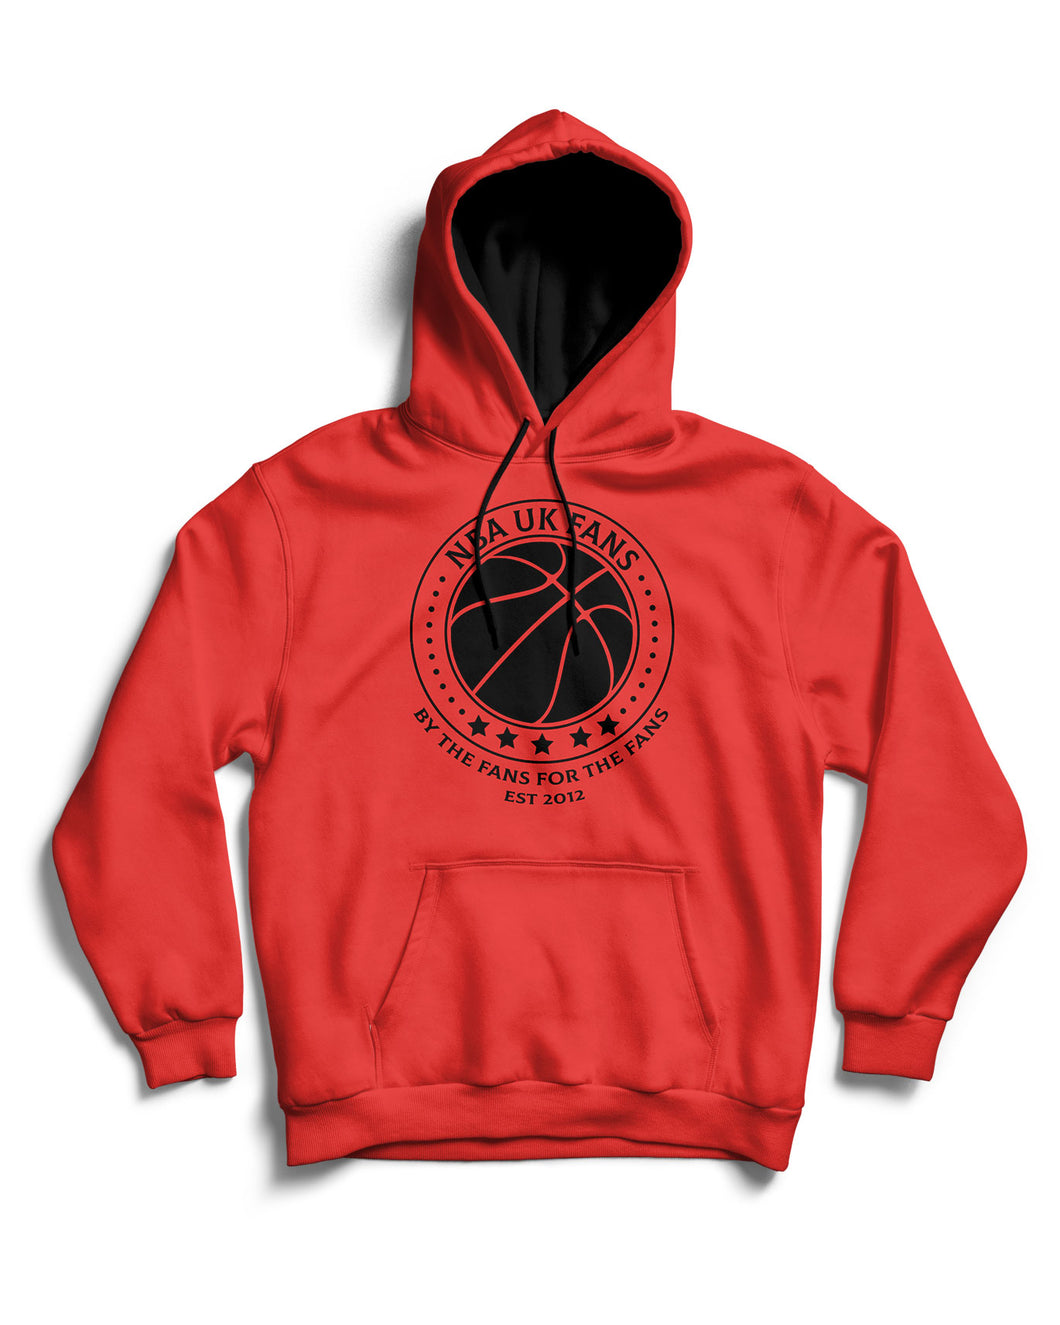 NBA UK Fans Logo Fire Red Pullover Hoodie